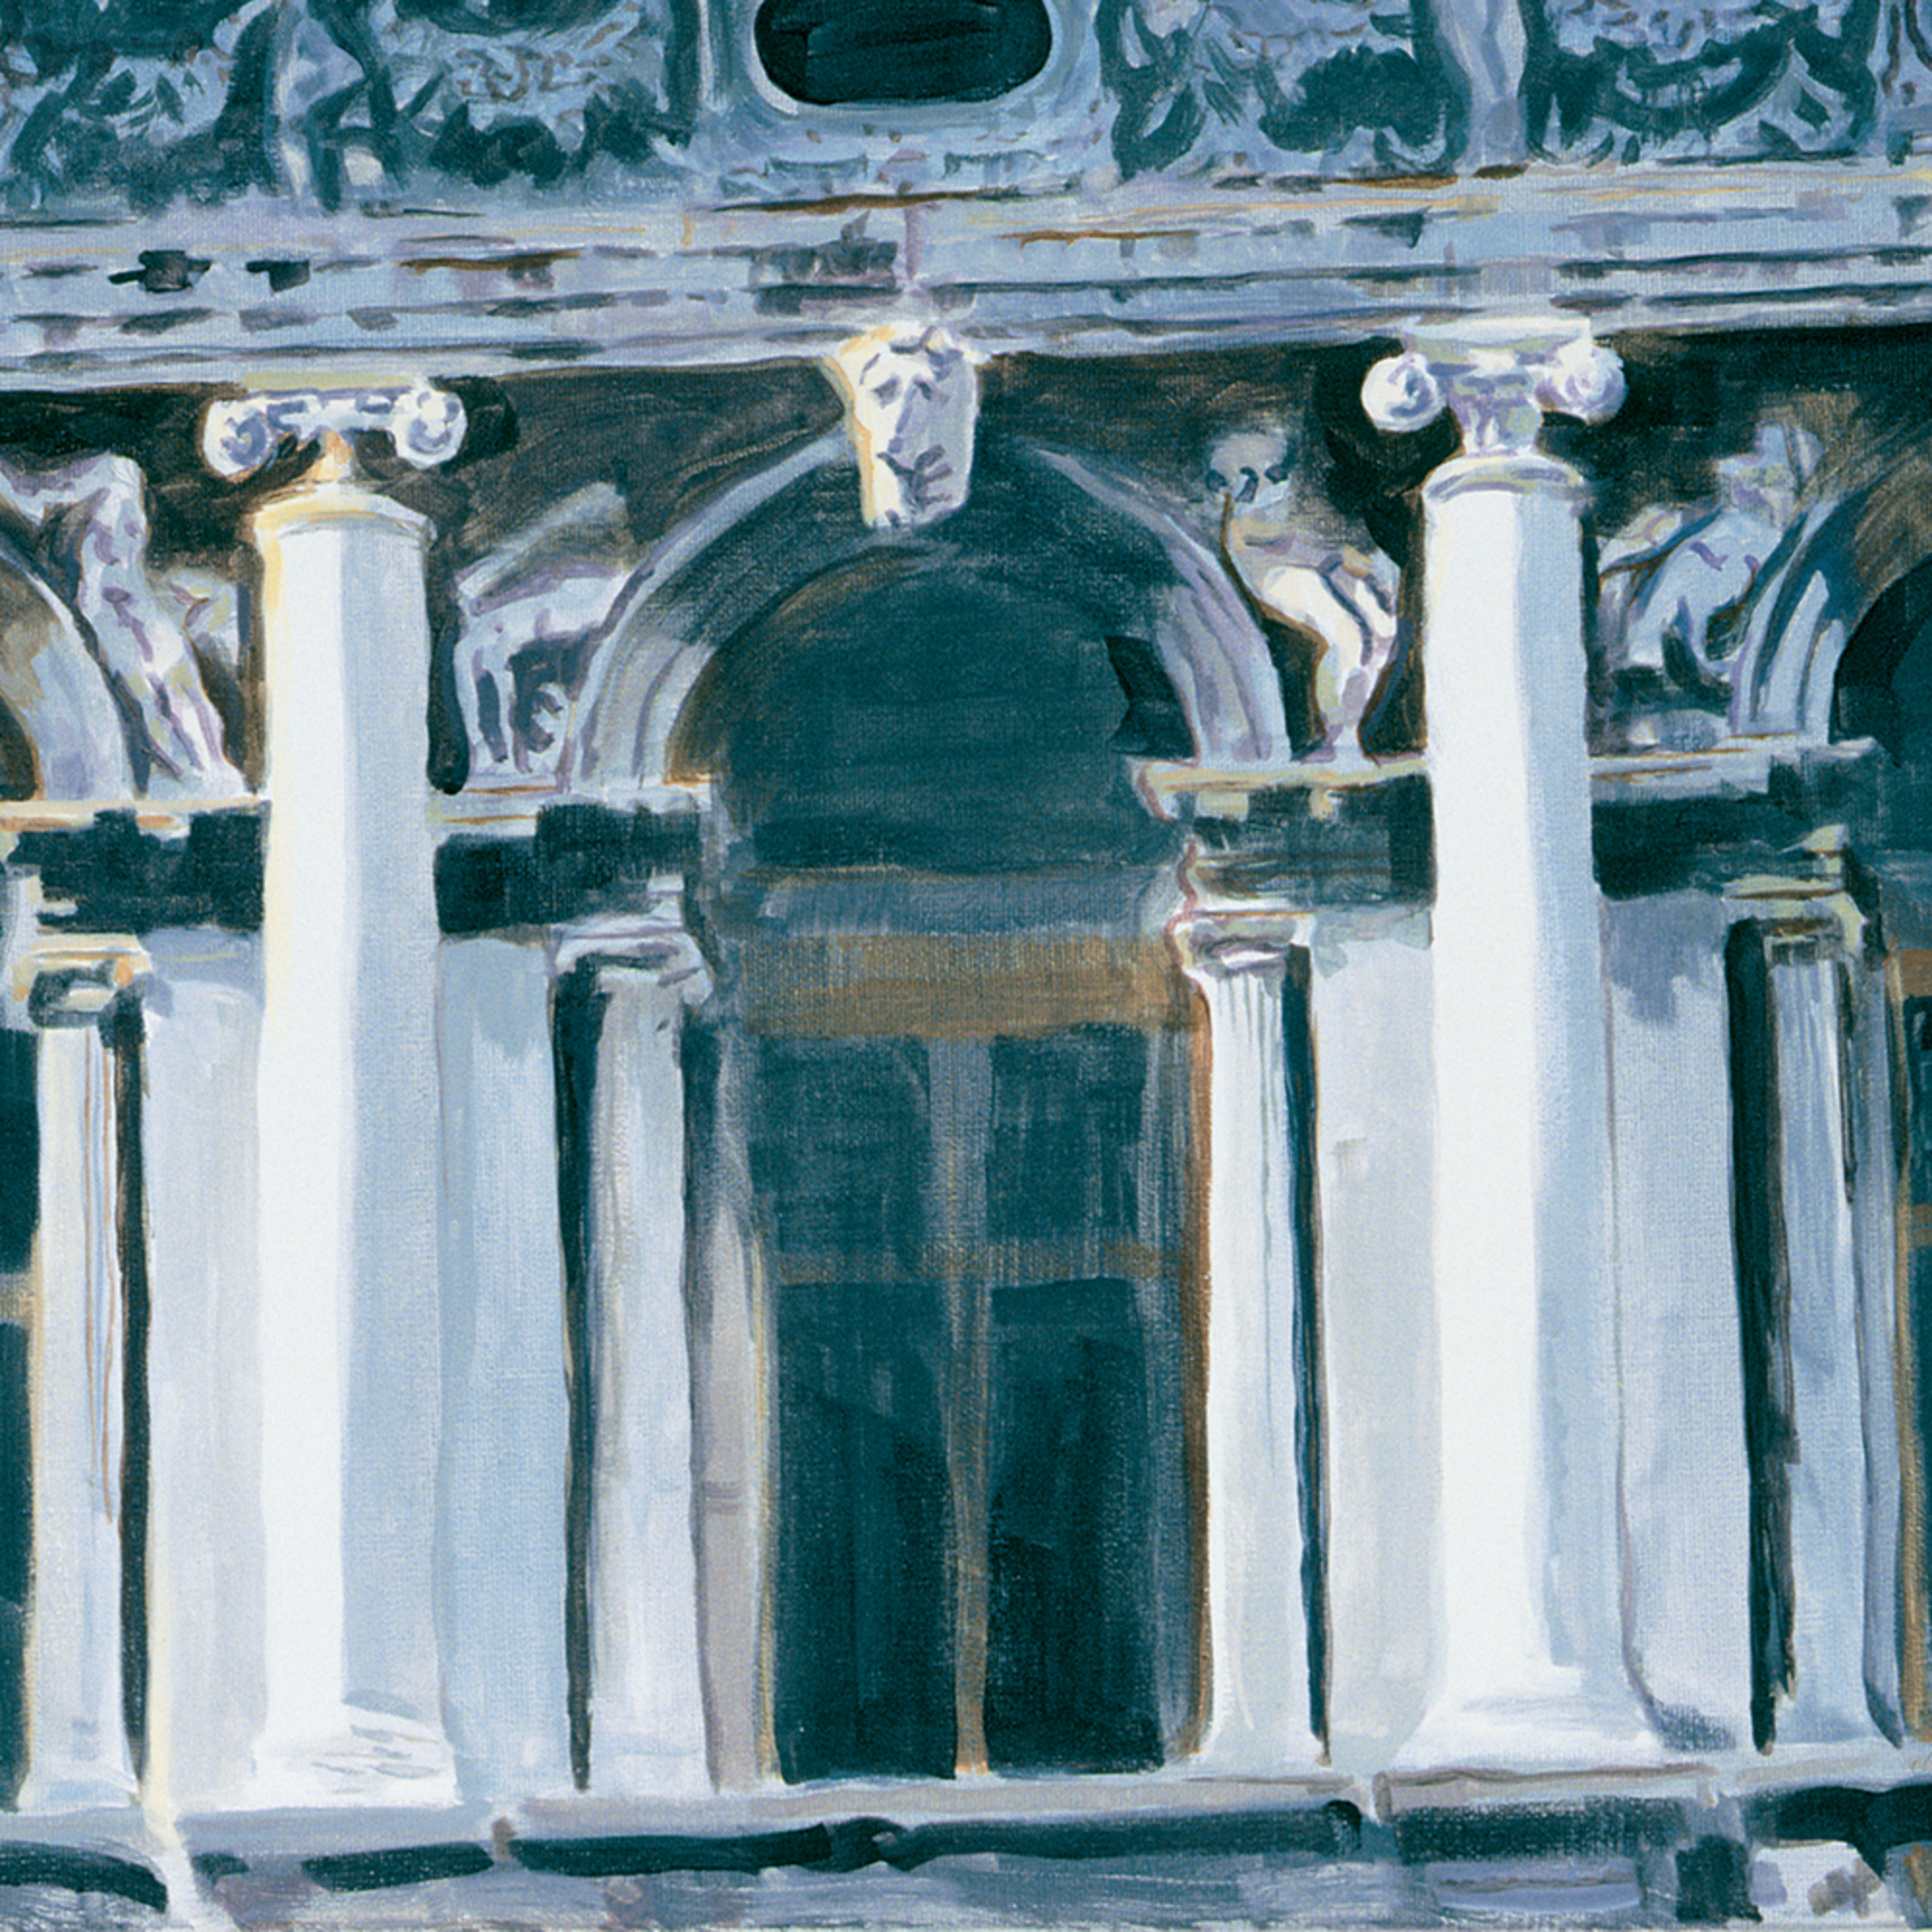 Palazzoducalep ufghrd